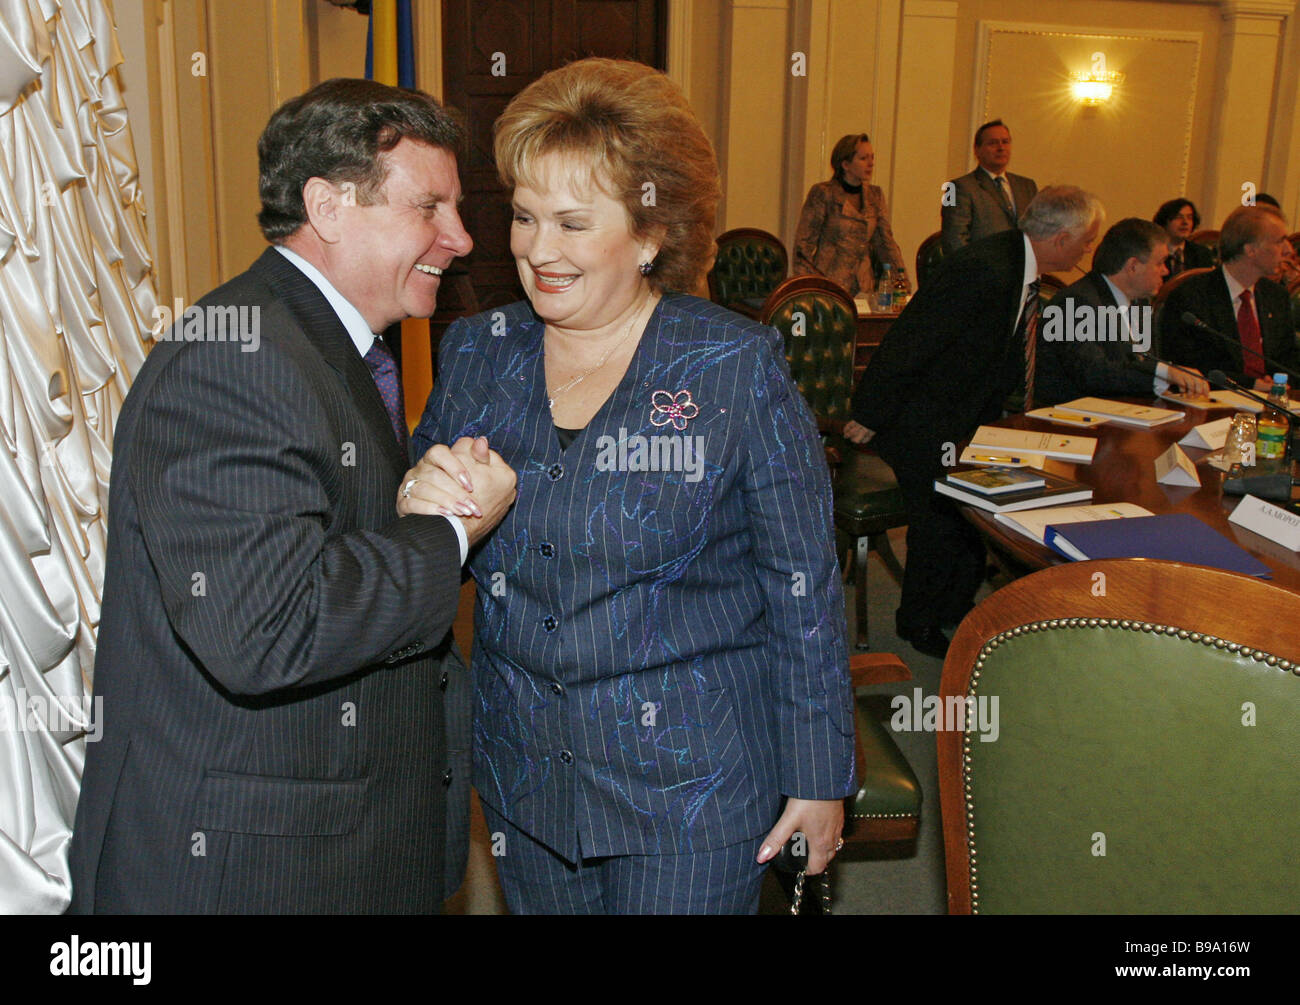 The Speaker of the State Duma became a fire victim 08/25/2011 46